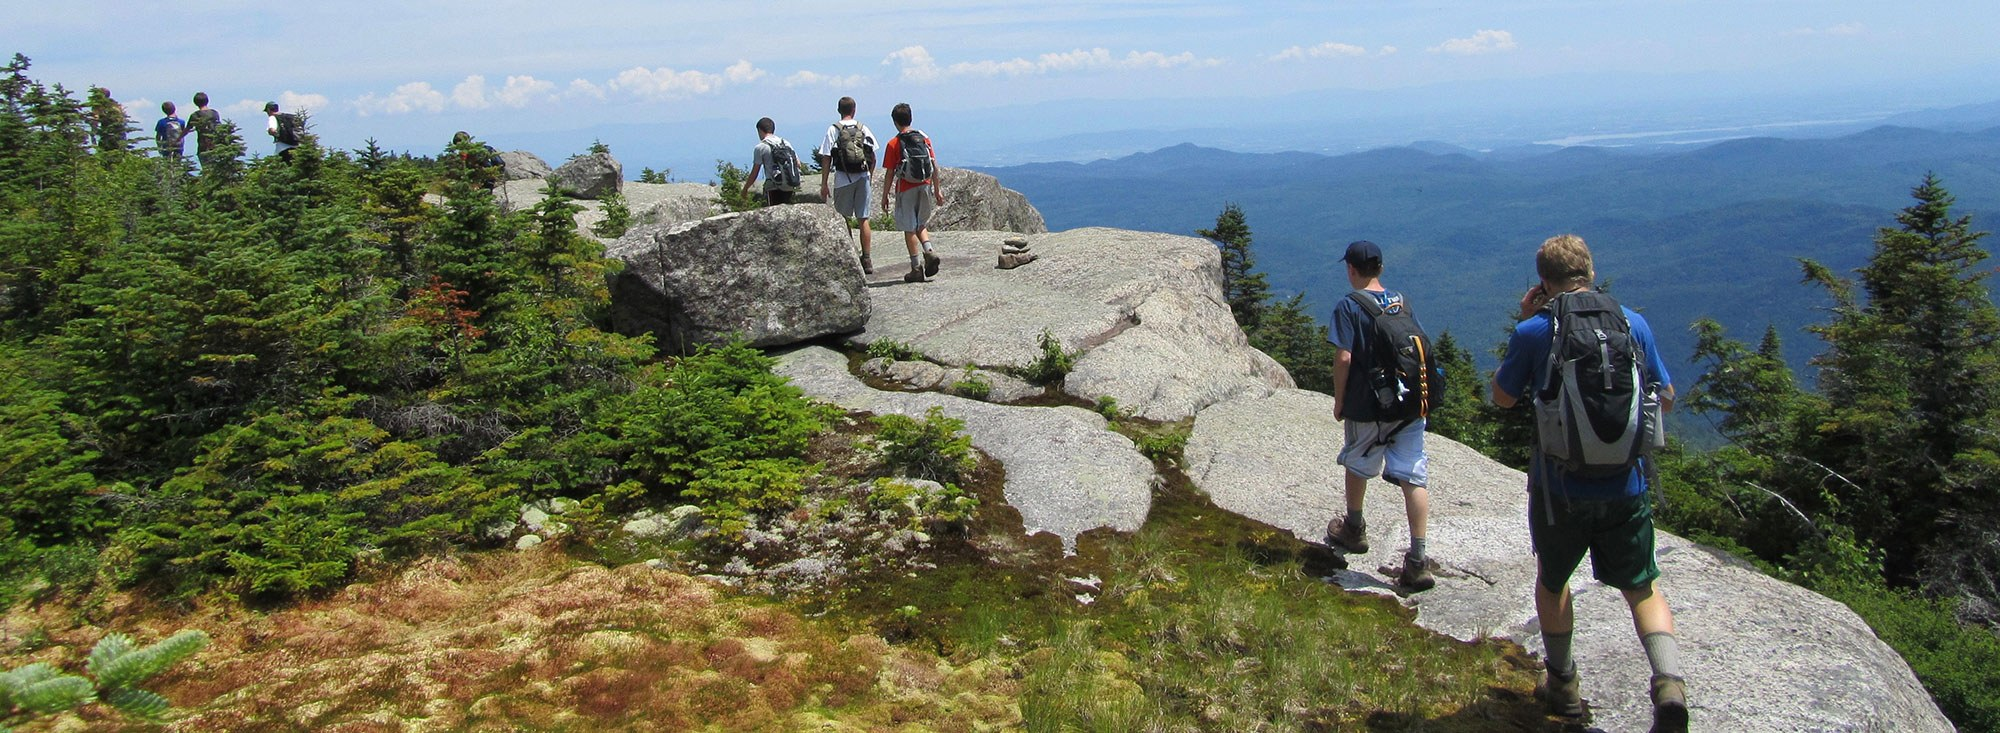 NCC Campers Hiking Mountain Ridge